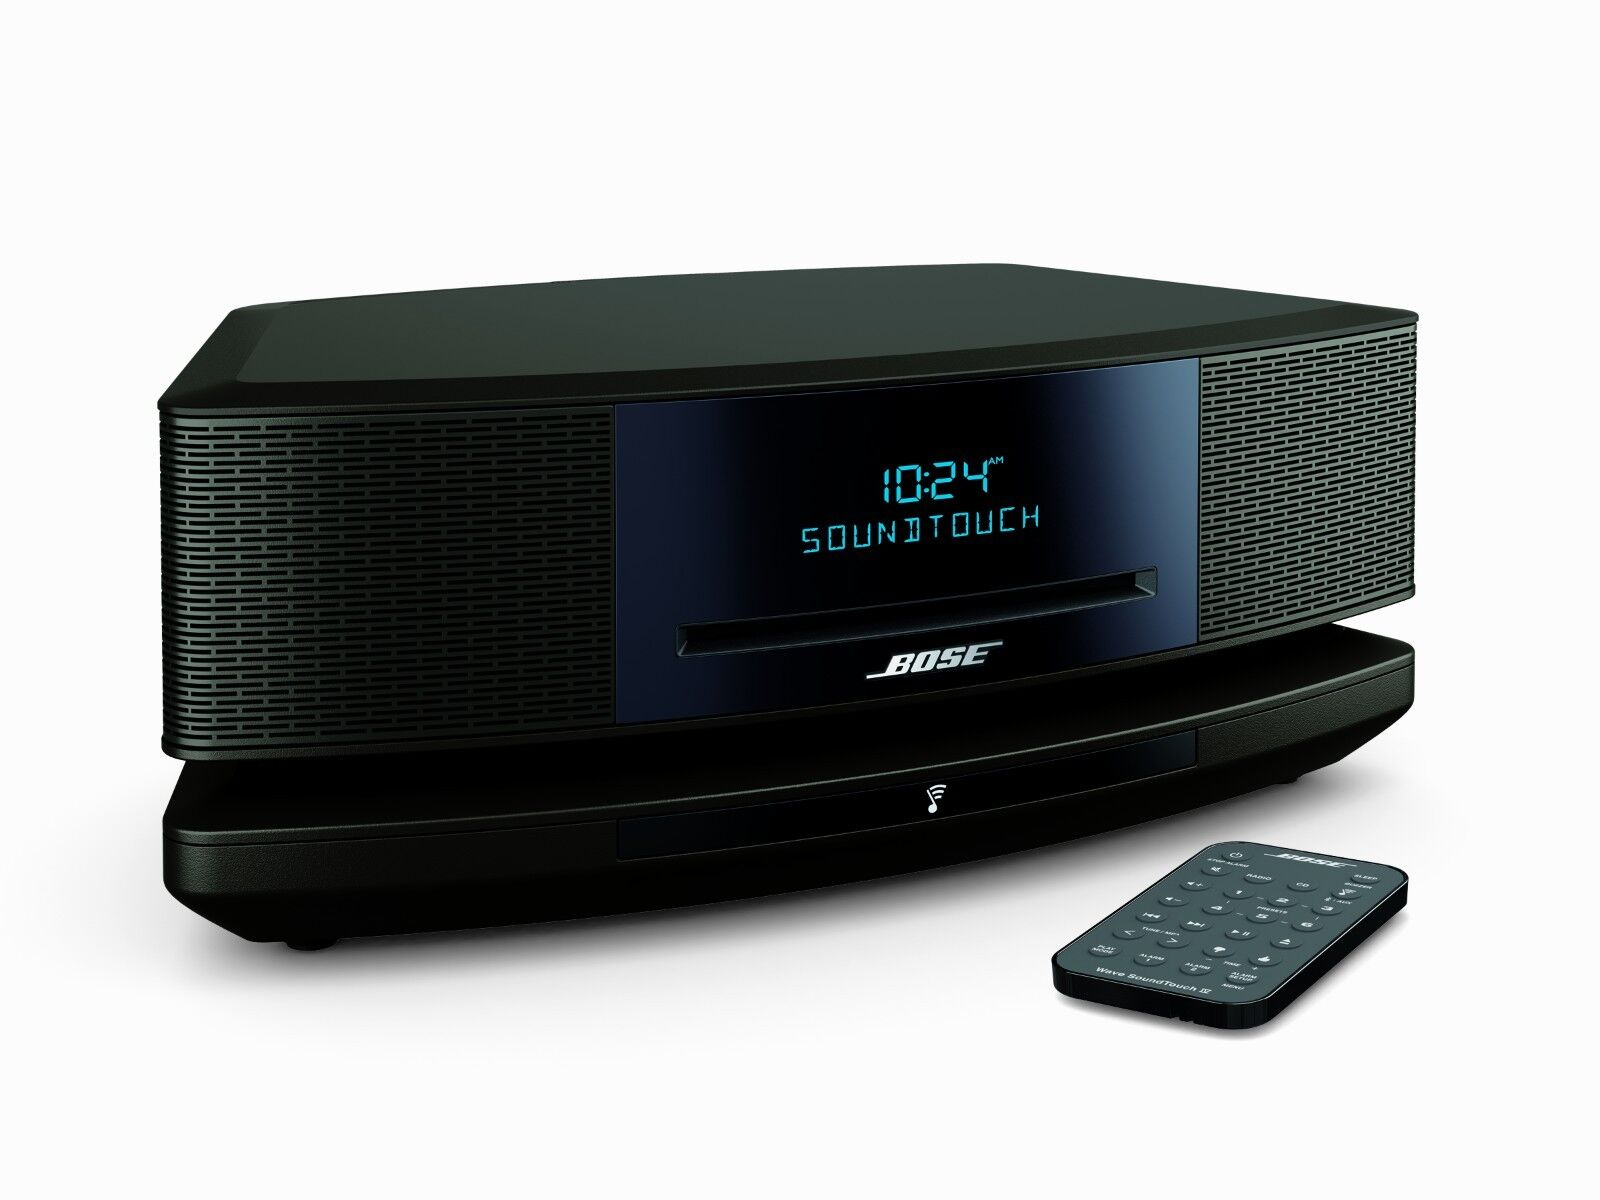 bose wave soundtouch music system iv remote cd player and radio espresso black. Black Bedroom Furniture Sets. Home Design Ideas